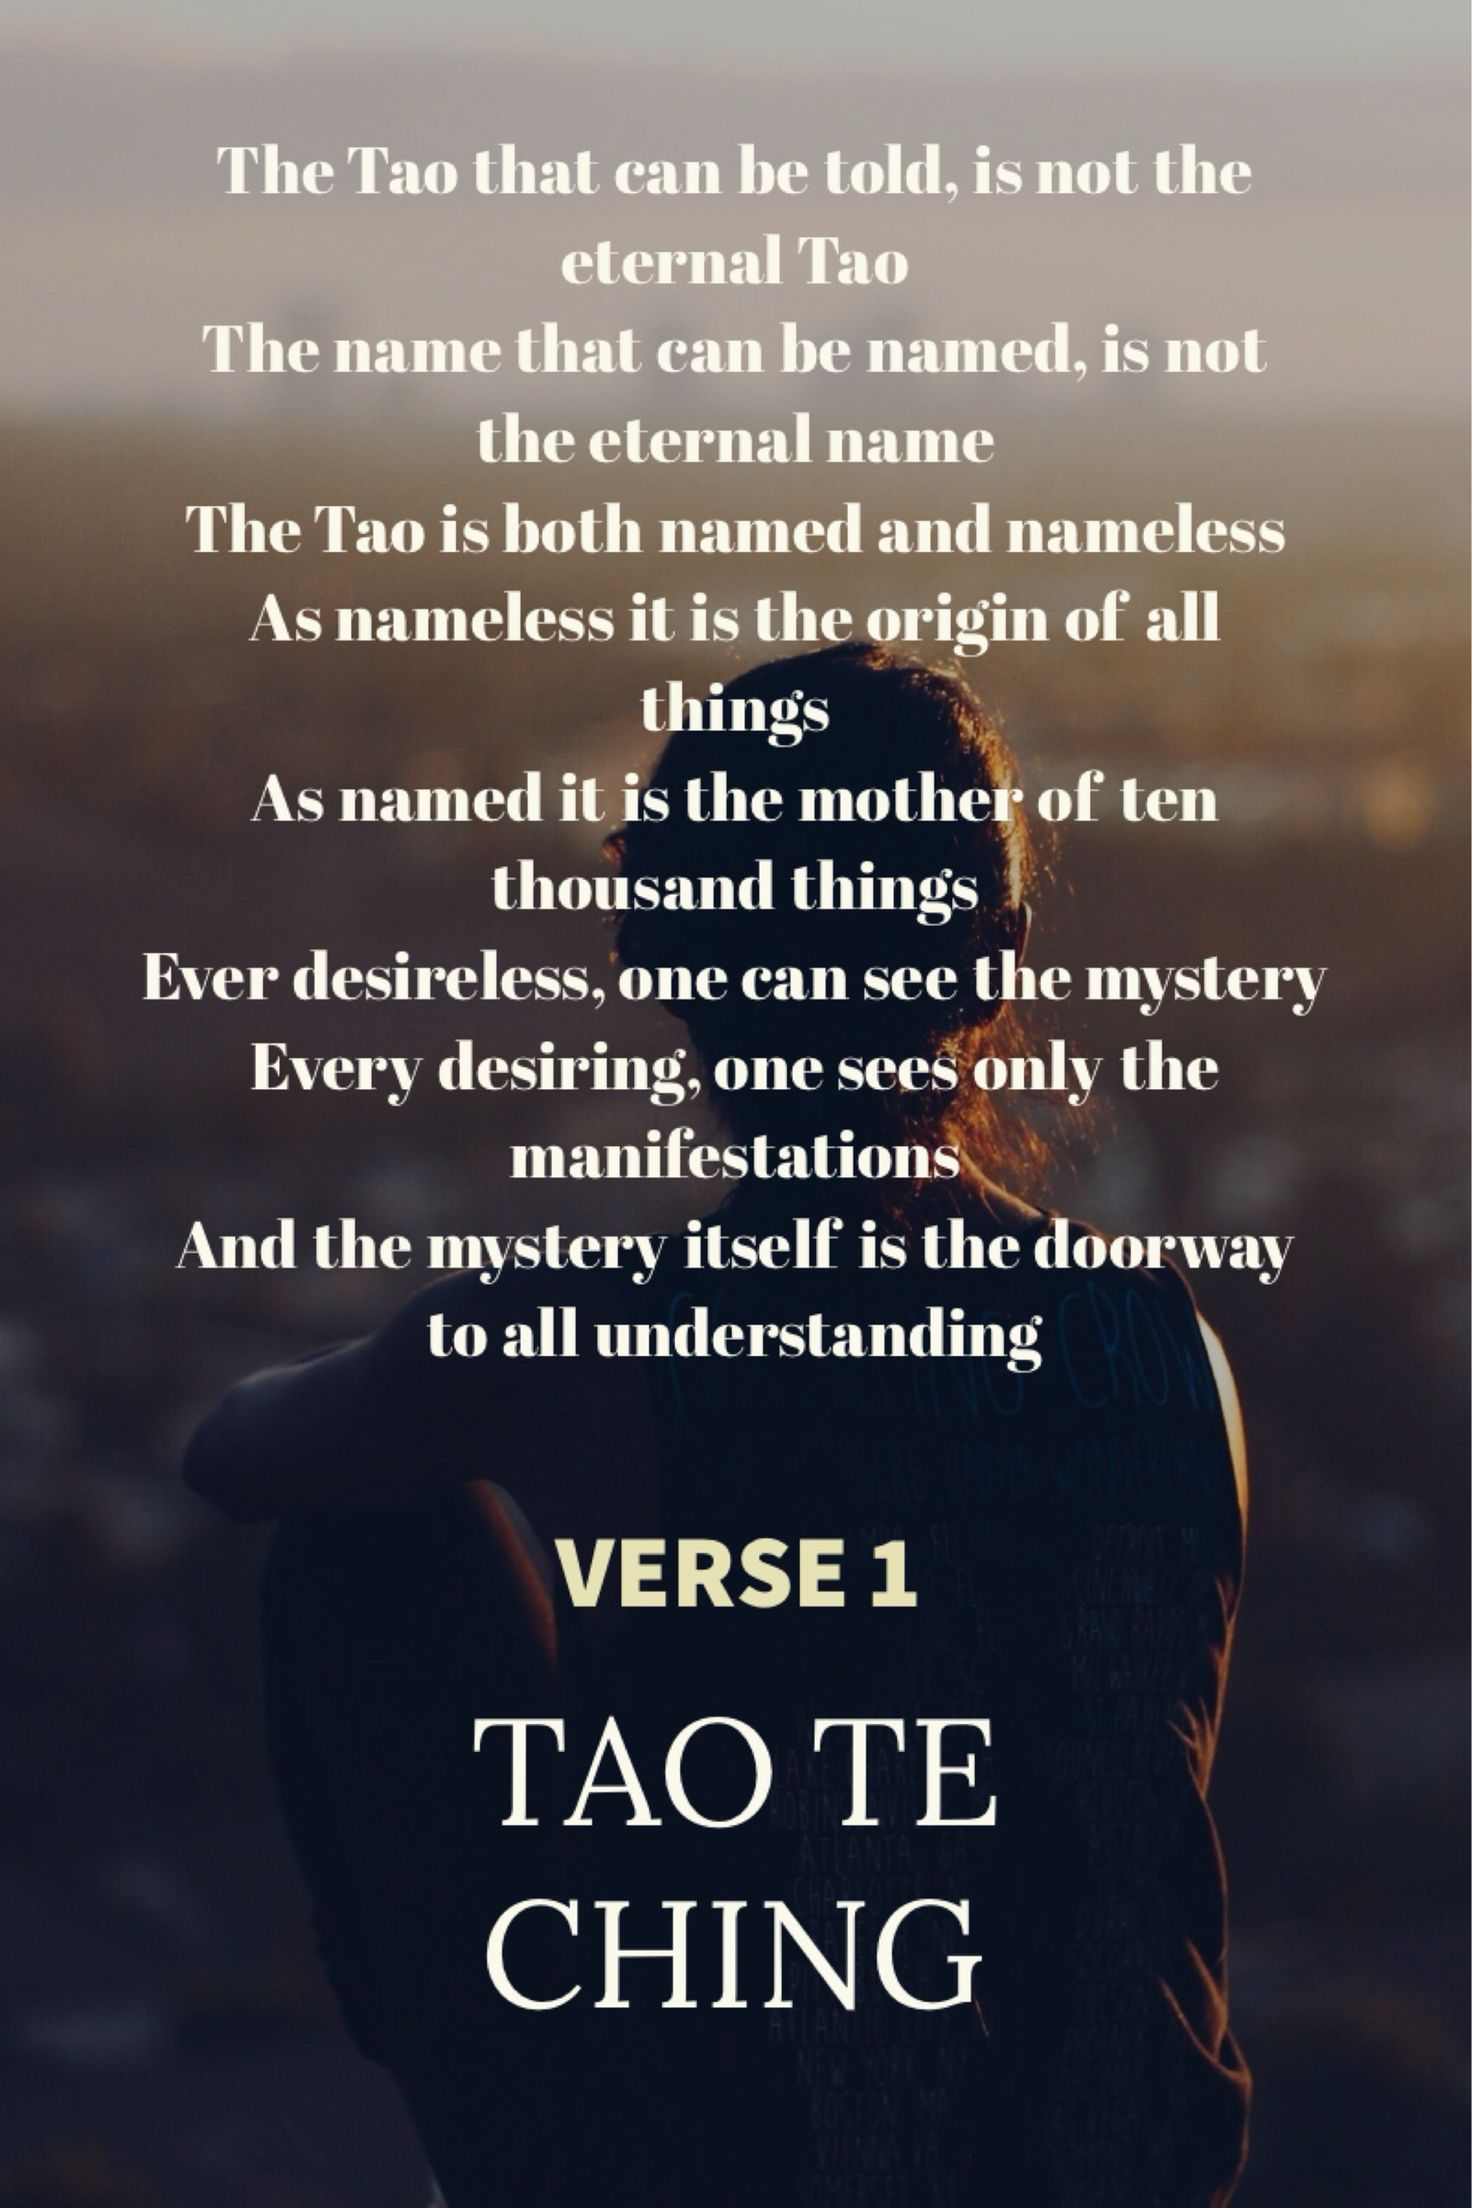 tao te ching lao zu verse the tao that can be told is not the tao te ching lao zu verse 1 the tao that can be told is not the eternal tao the that can be d is not the eternal the tao